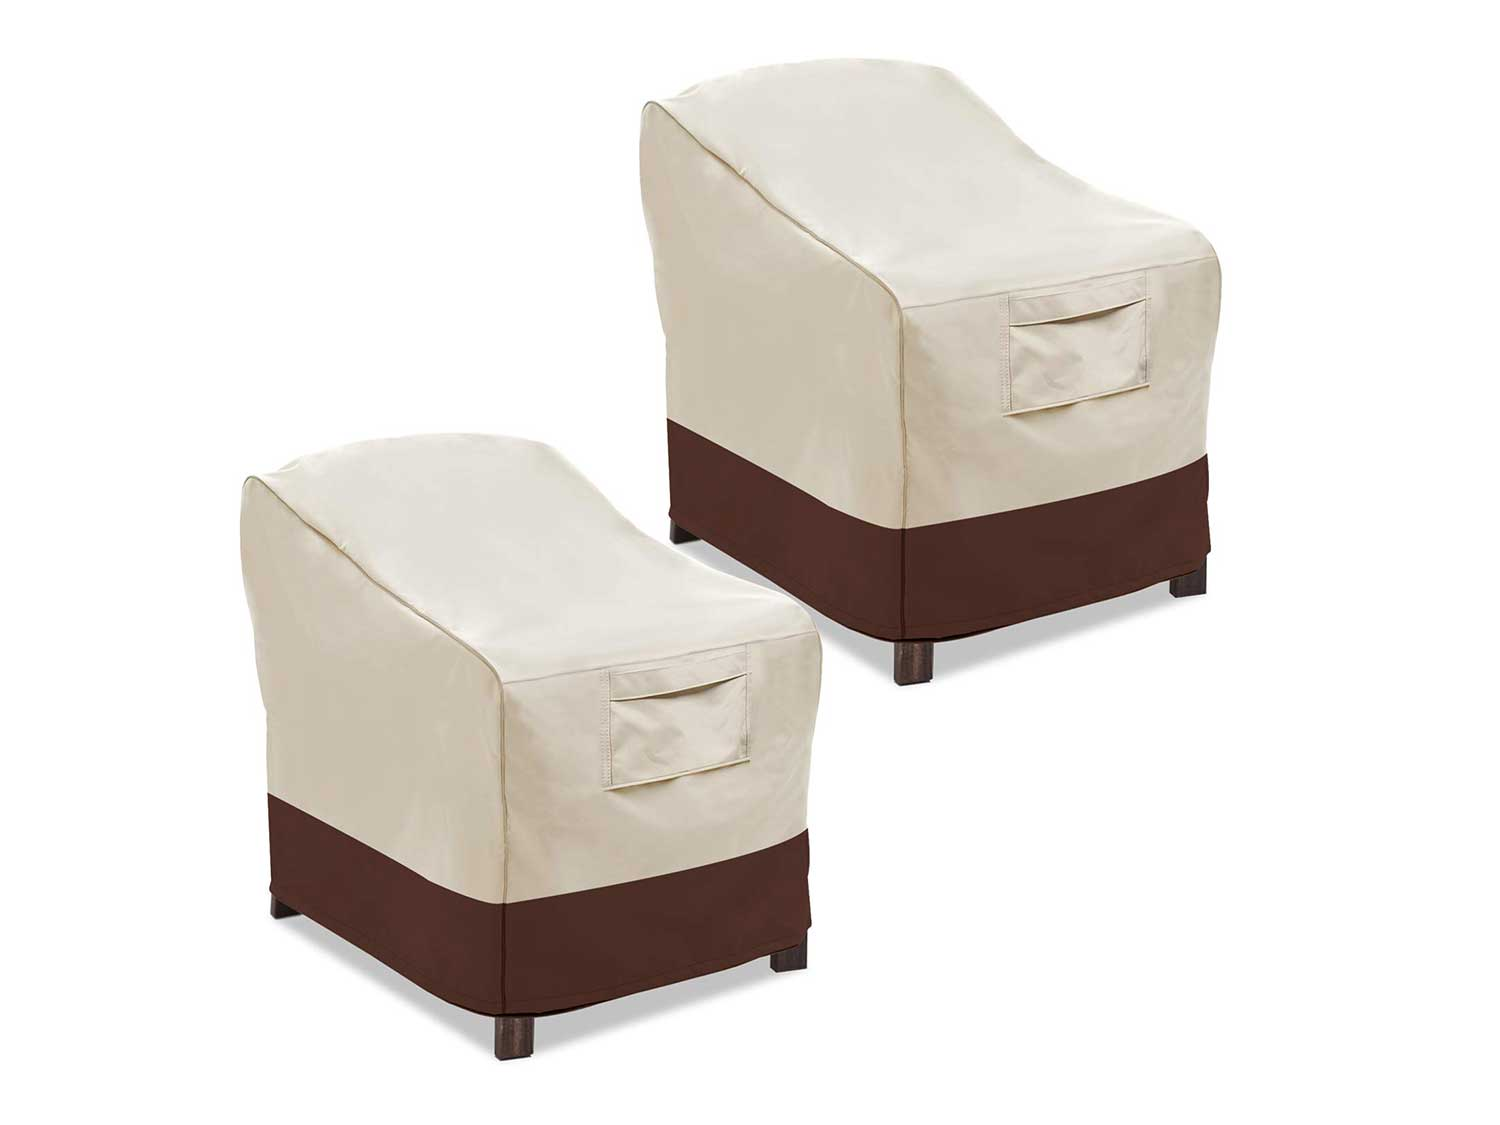 Vailge Patio Chair Covers, Lounge Deep Seat Cover, Heavy Duty and Waterproof Outdoor Lawn Patio Furniture Covers